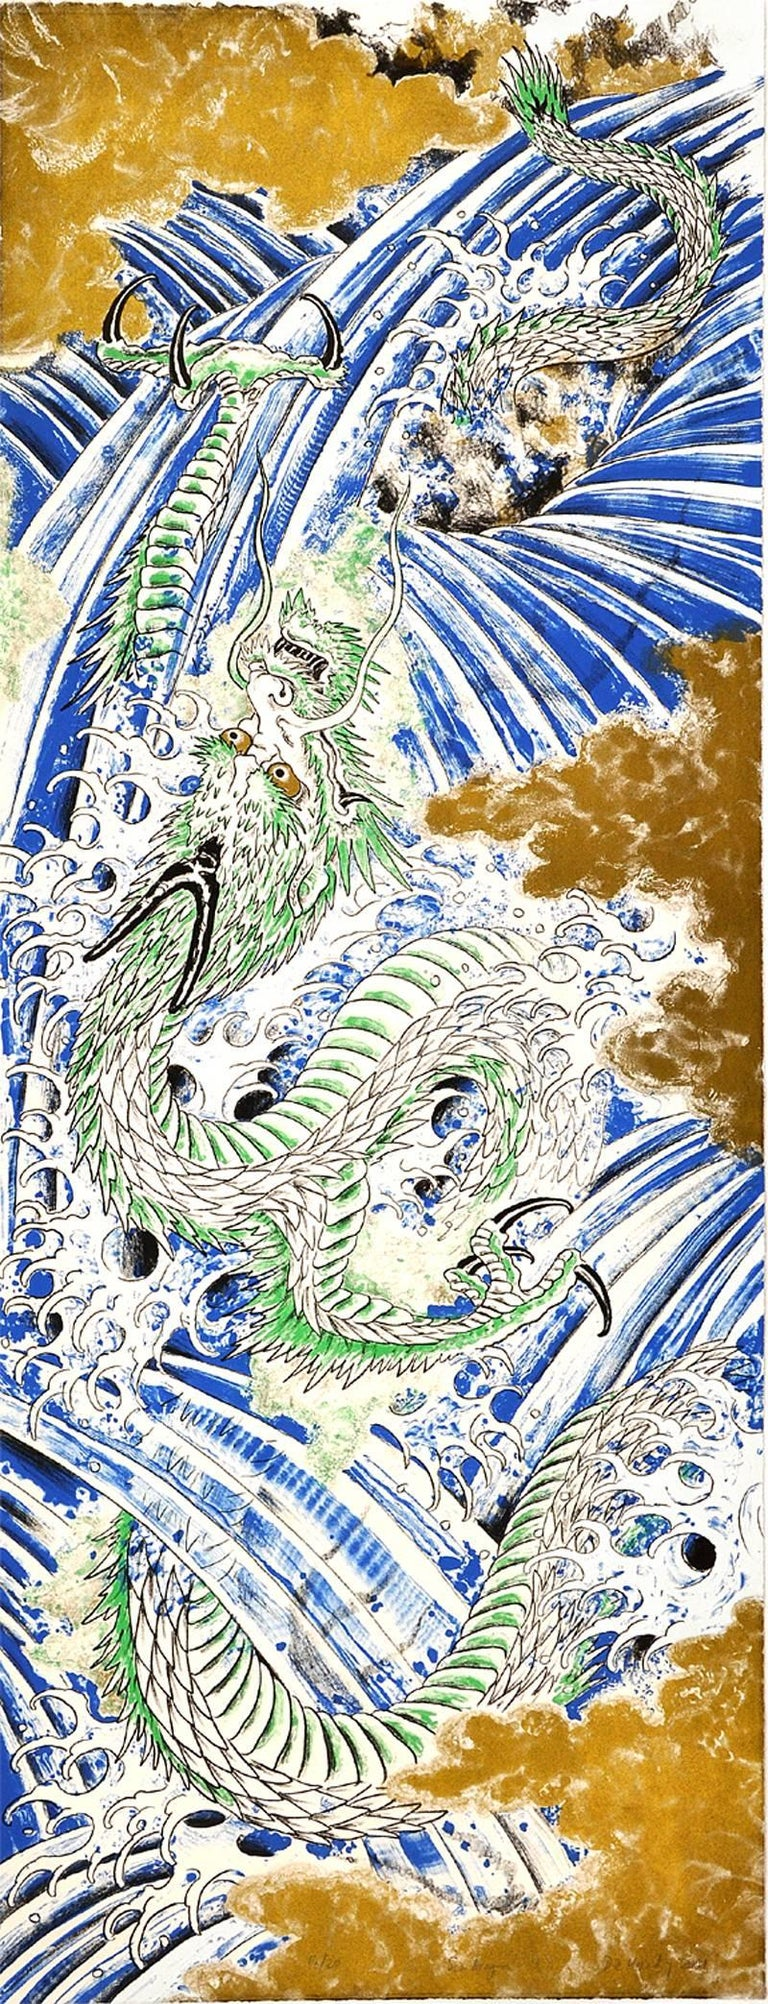 Don Ed Hardy Print - Sea Dragon